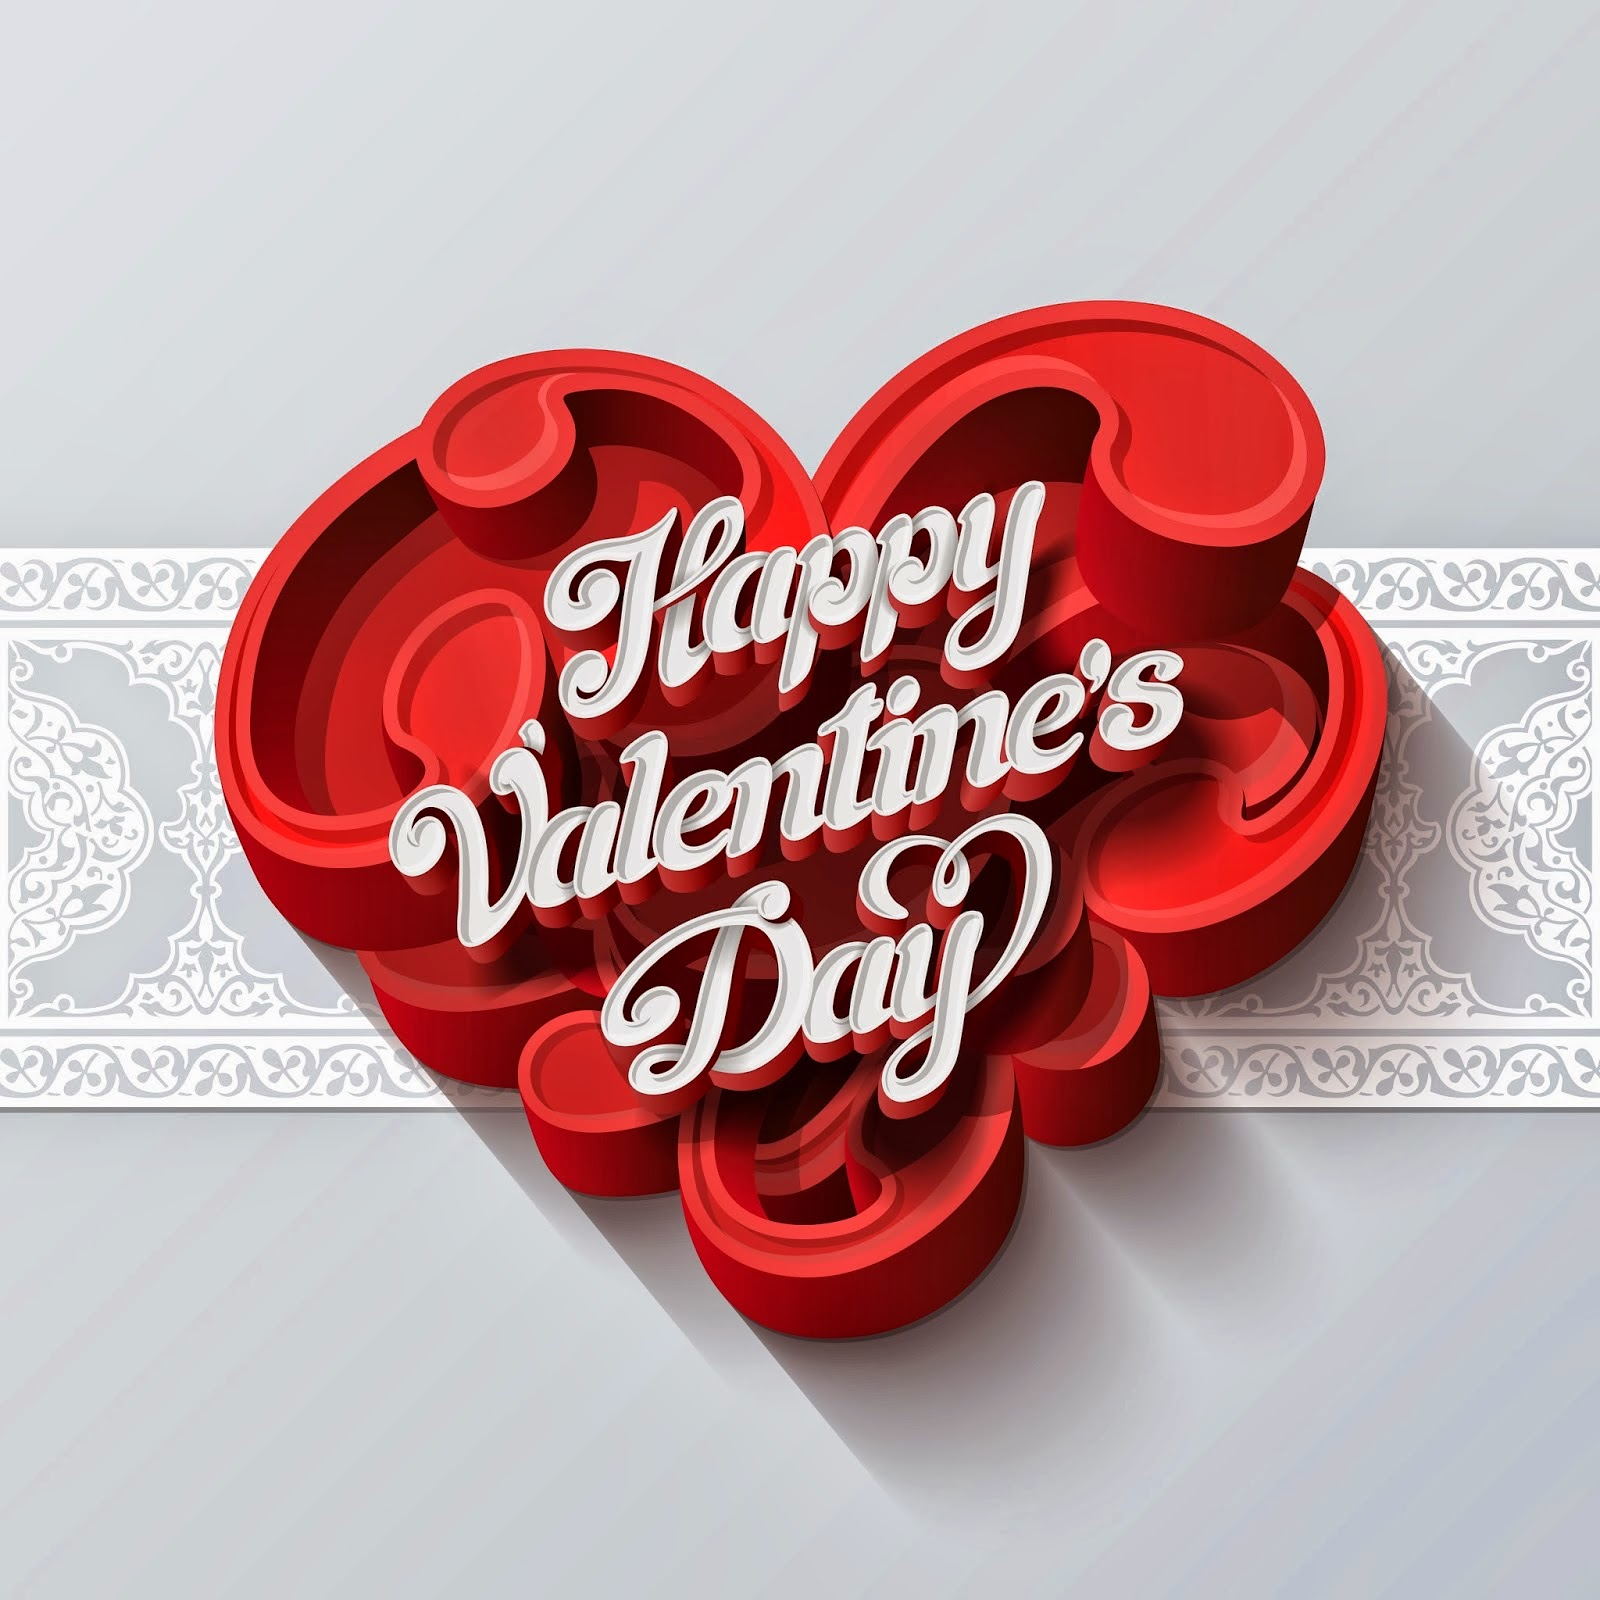 77 valentines day wallpapers - Happy Valentines Day Pictures Free